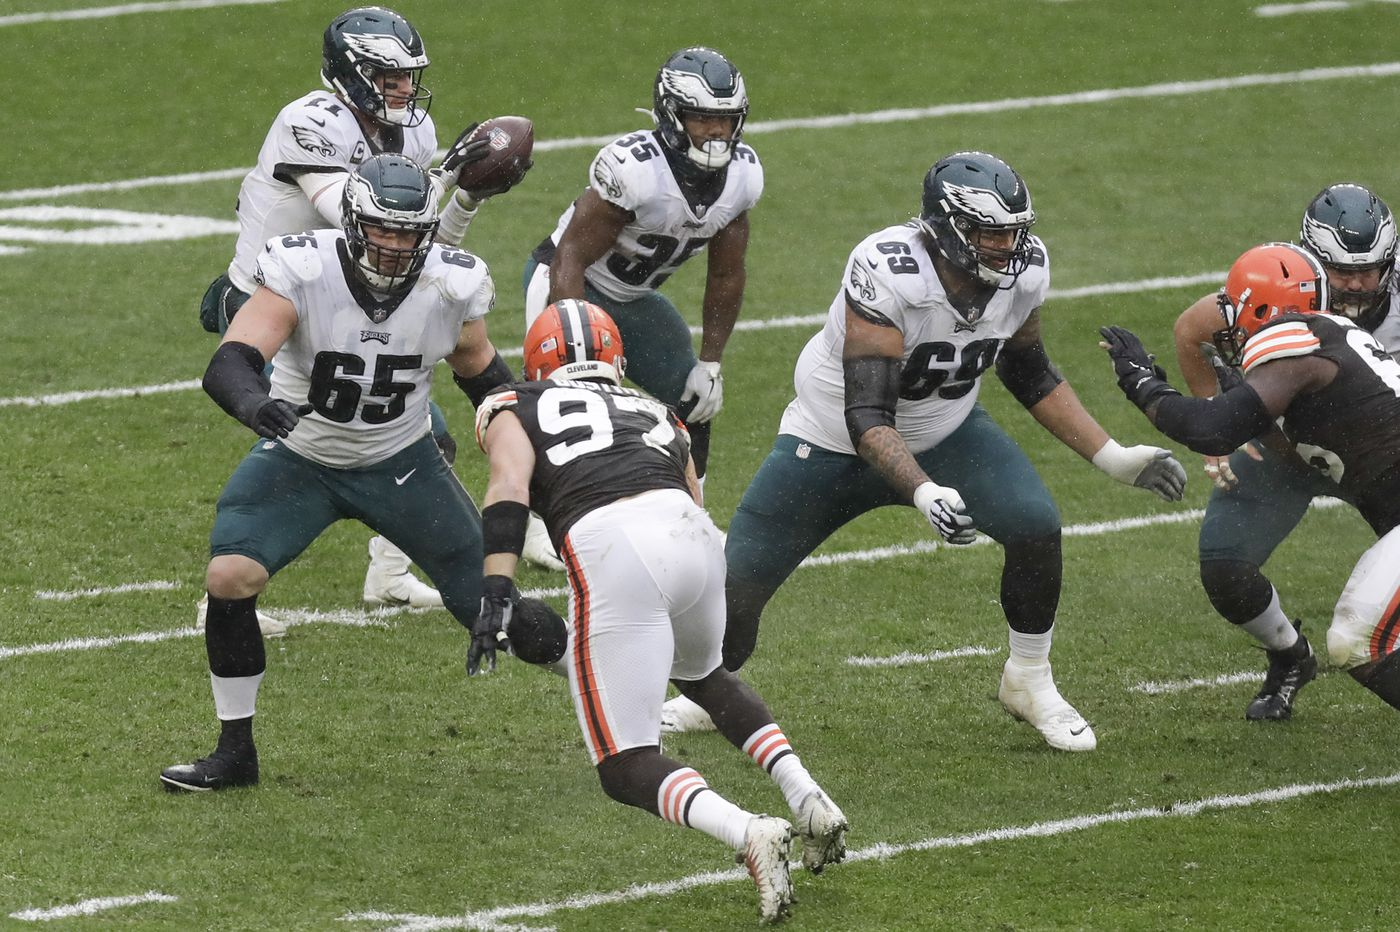 Lane Johnson out for season-ending ankle surgery; Eagles offensive line shake-up imminent